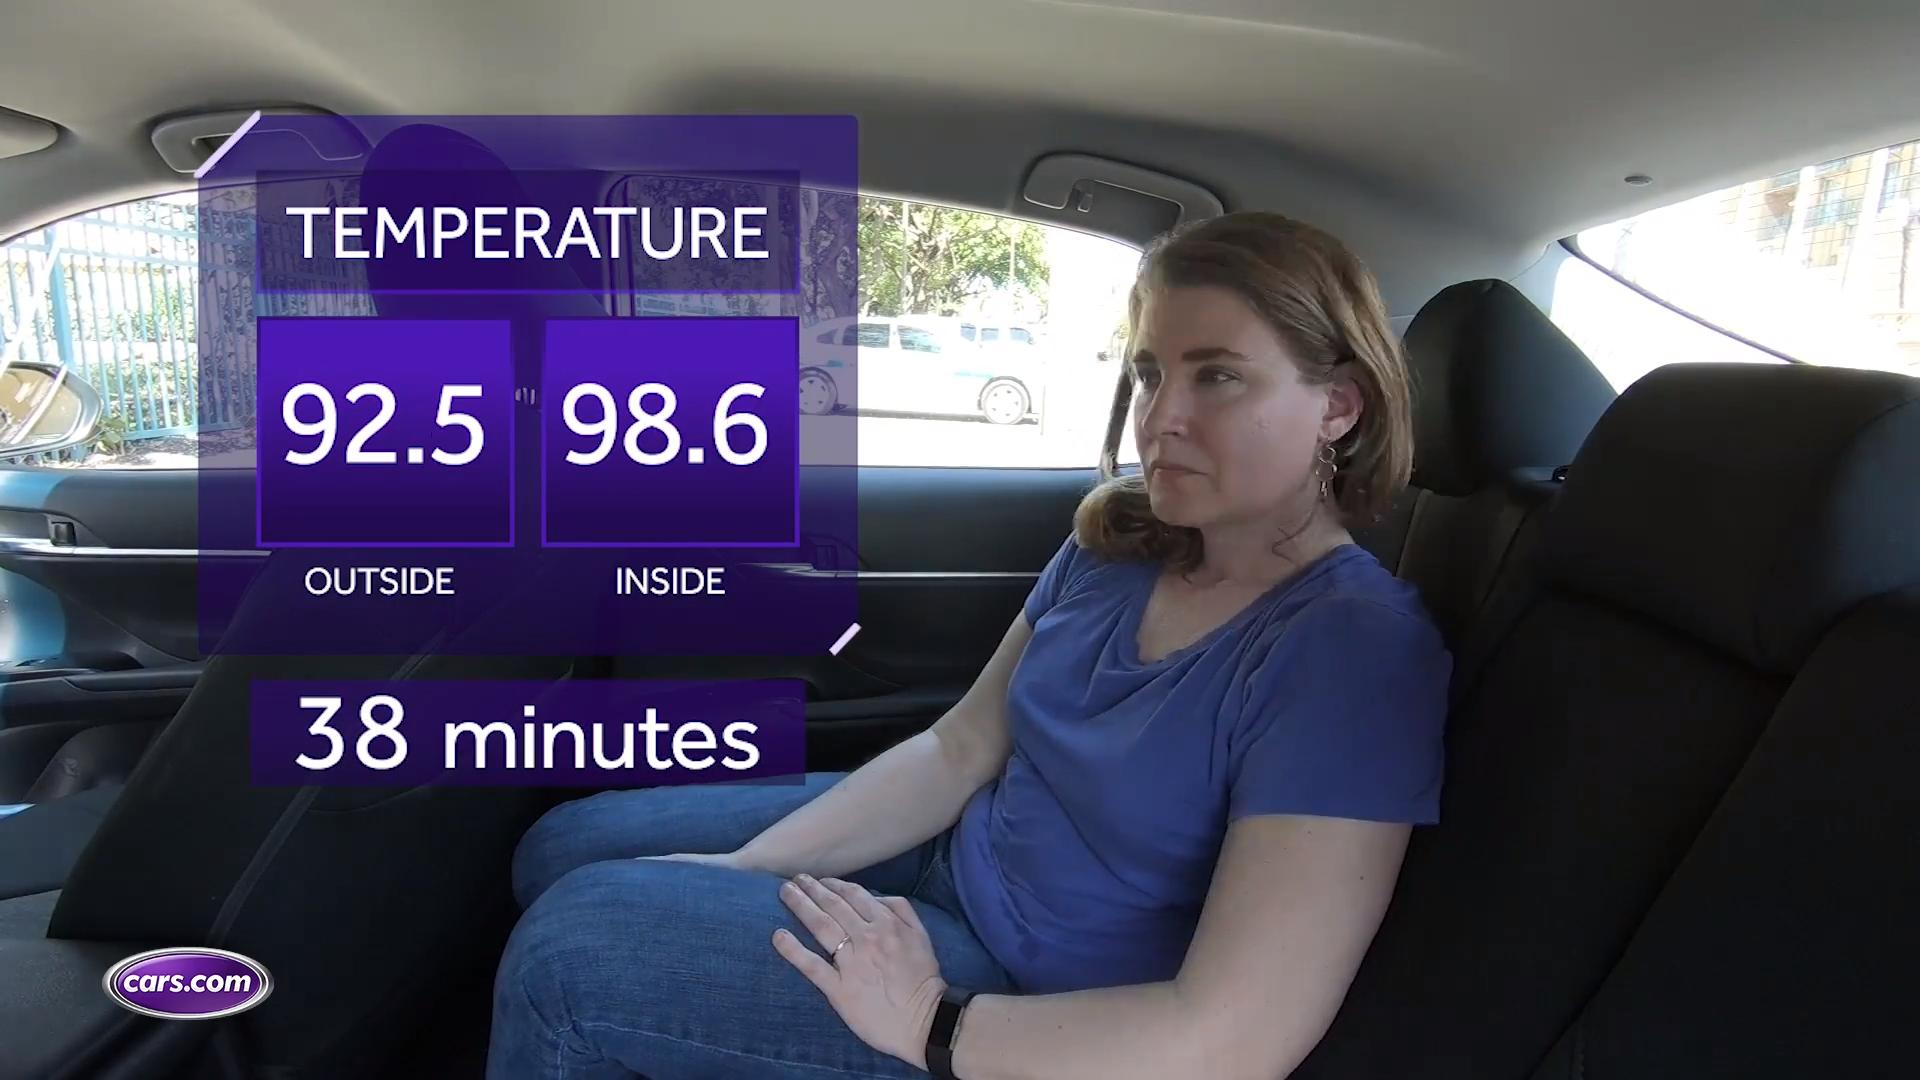 I Sit in the Hot Seat to Demonstrate Children's In-Car Heatstroke Risk